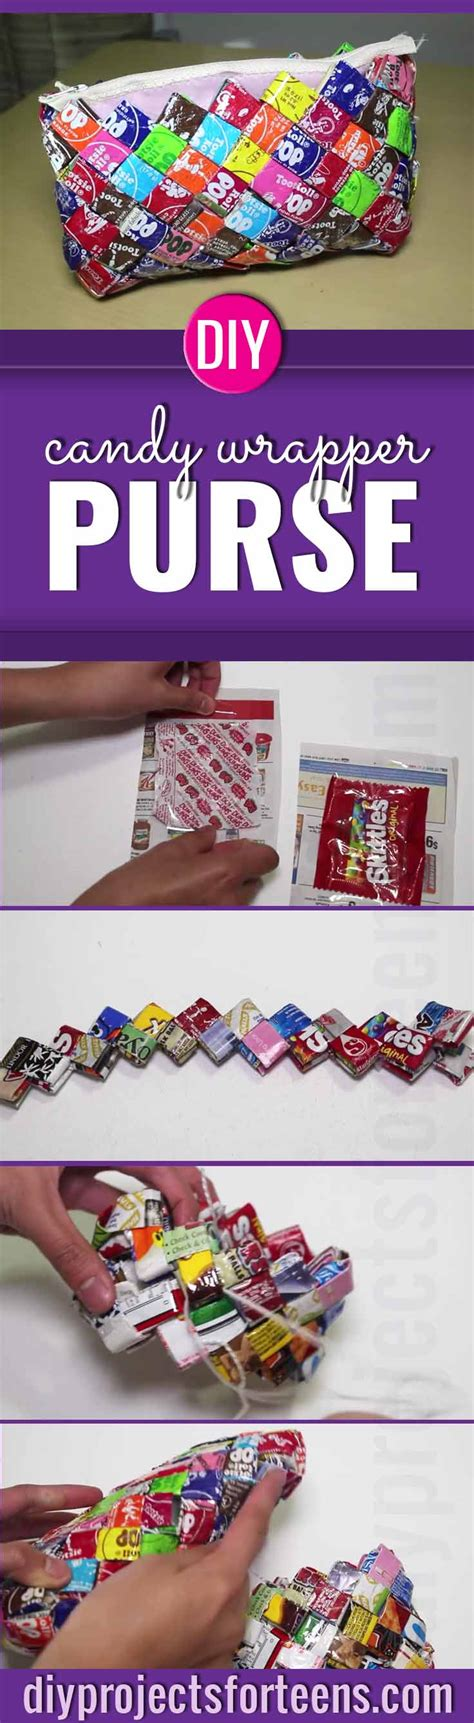 cheap arts and crafts ideas for cool arts and crafts ideas for diy projects